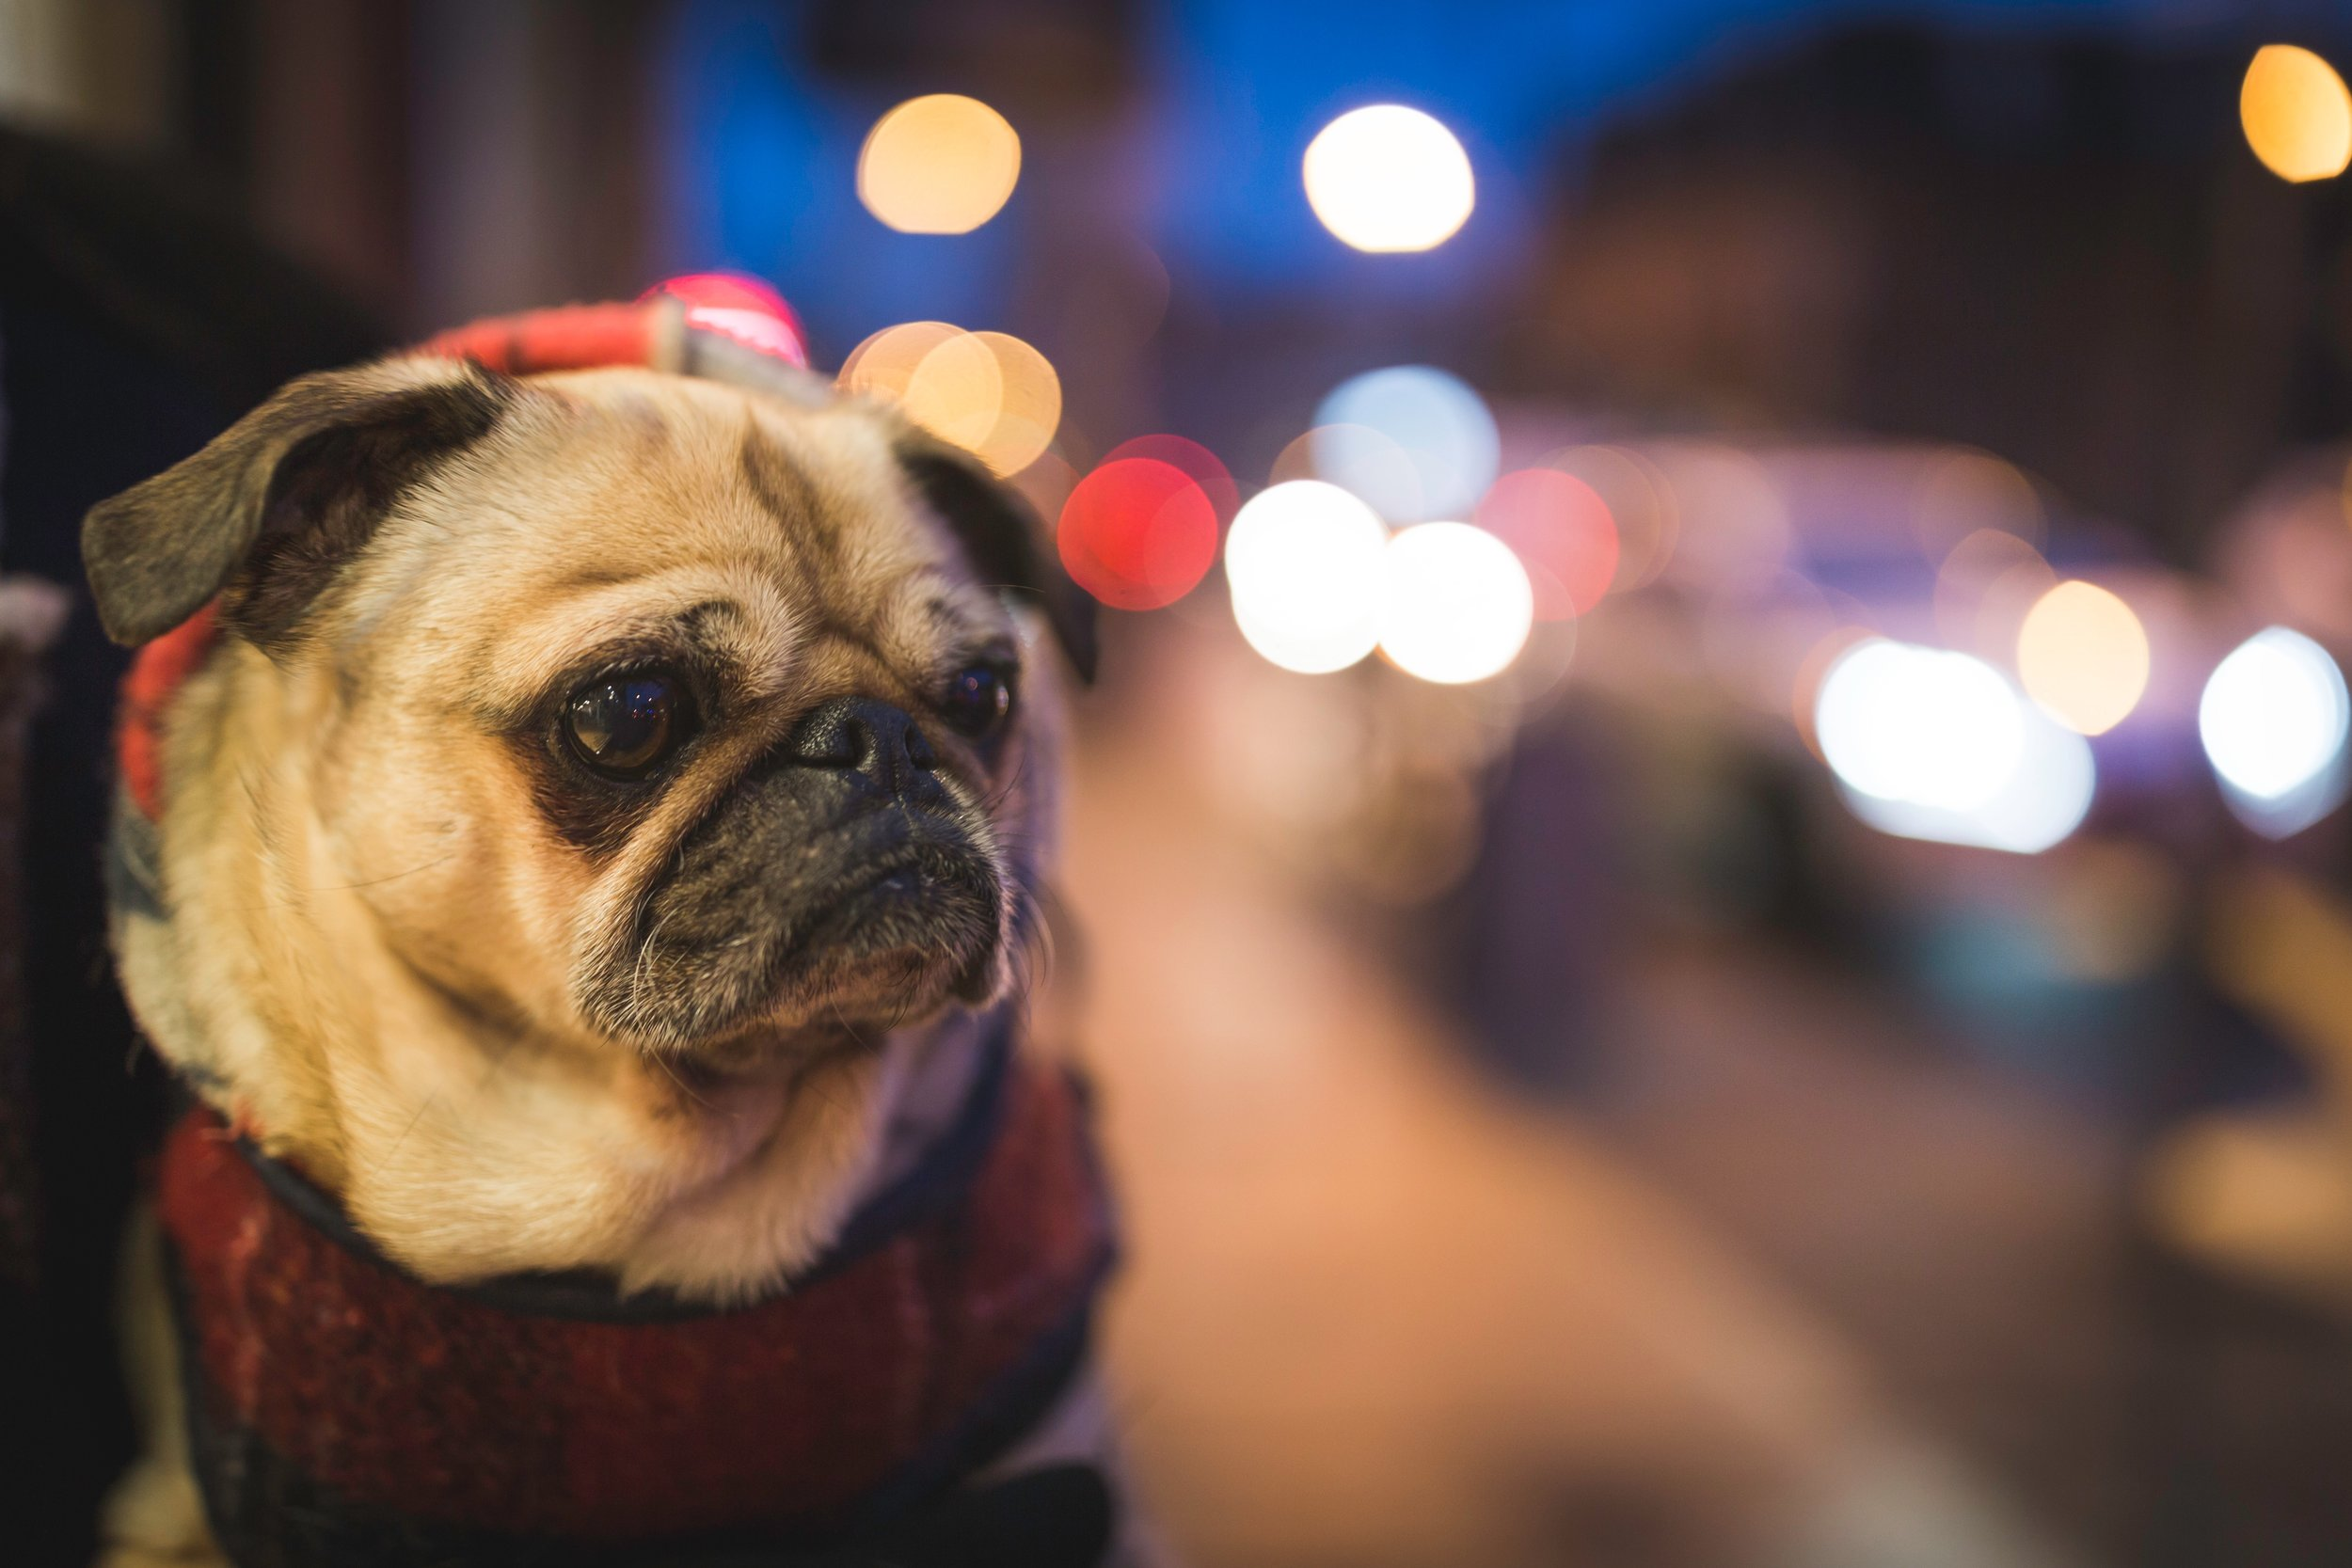 Pugs in particular have had special meaning in my life.